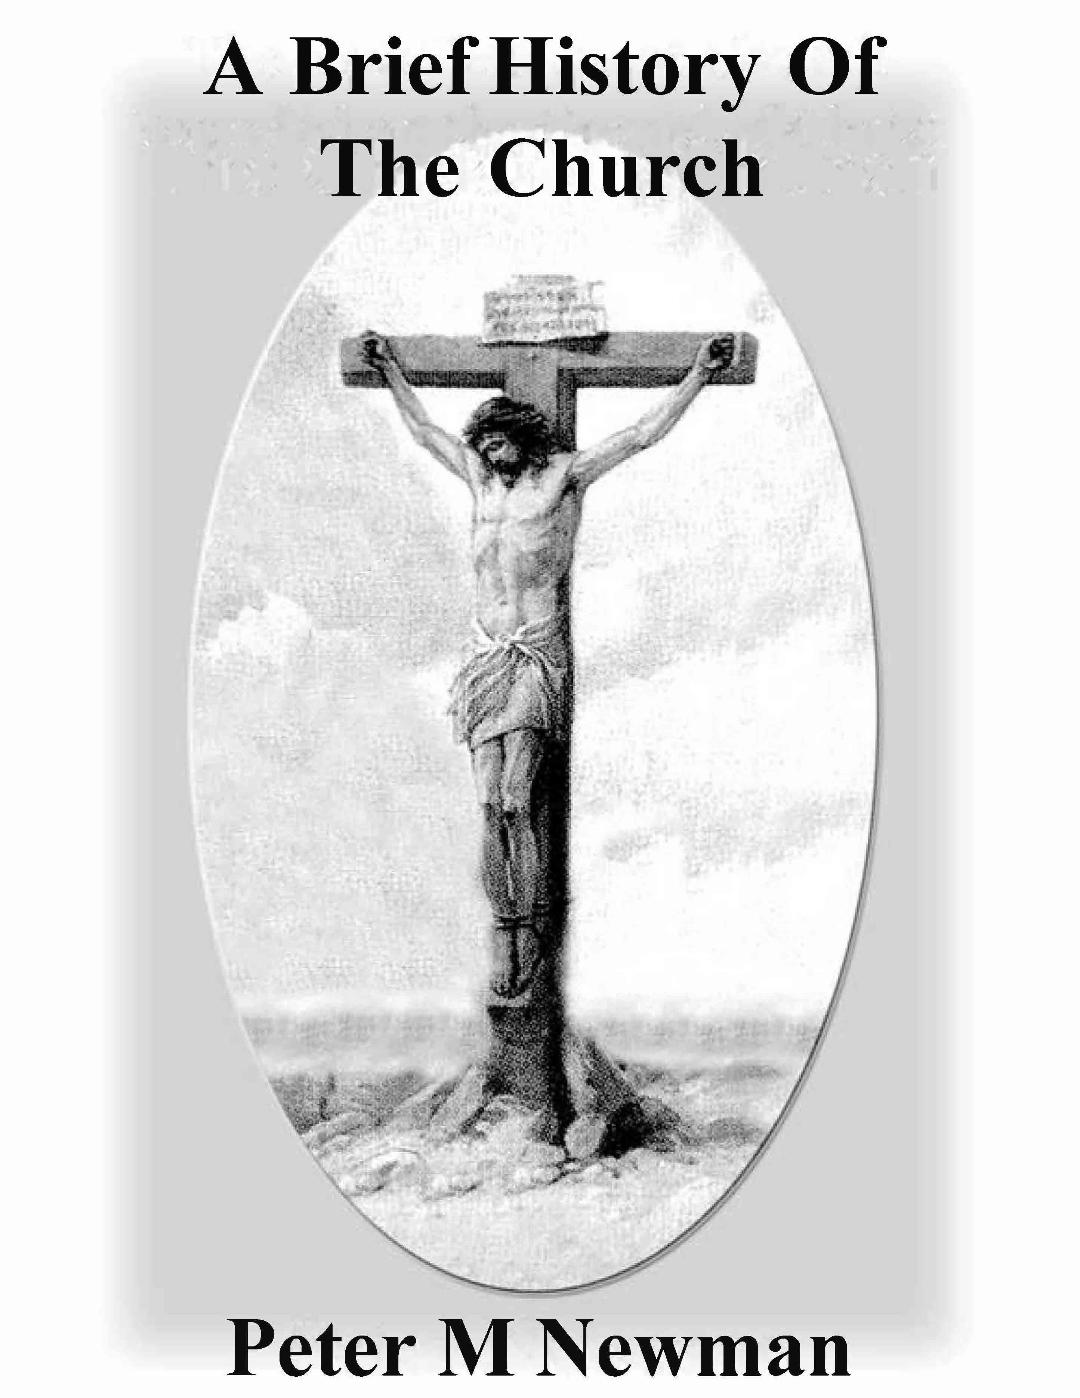 A Brief History of the Church